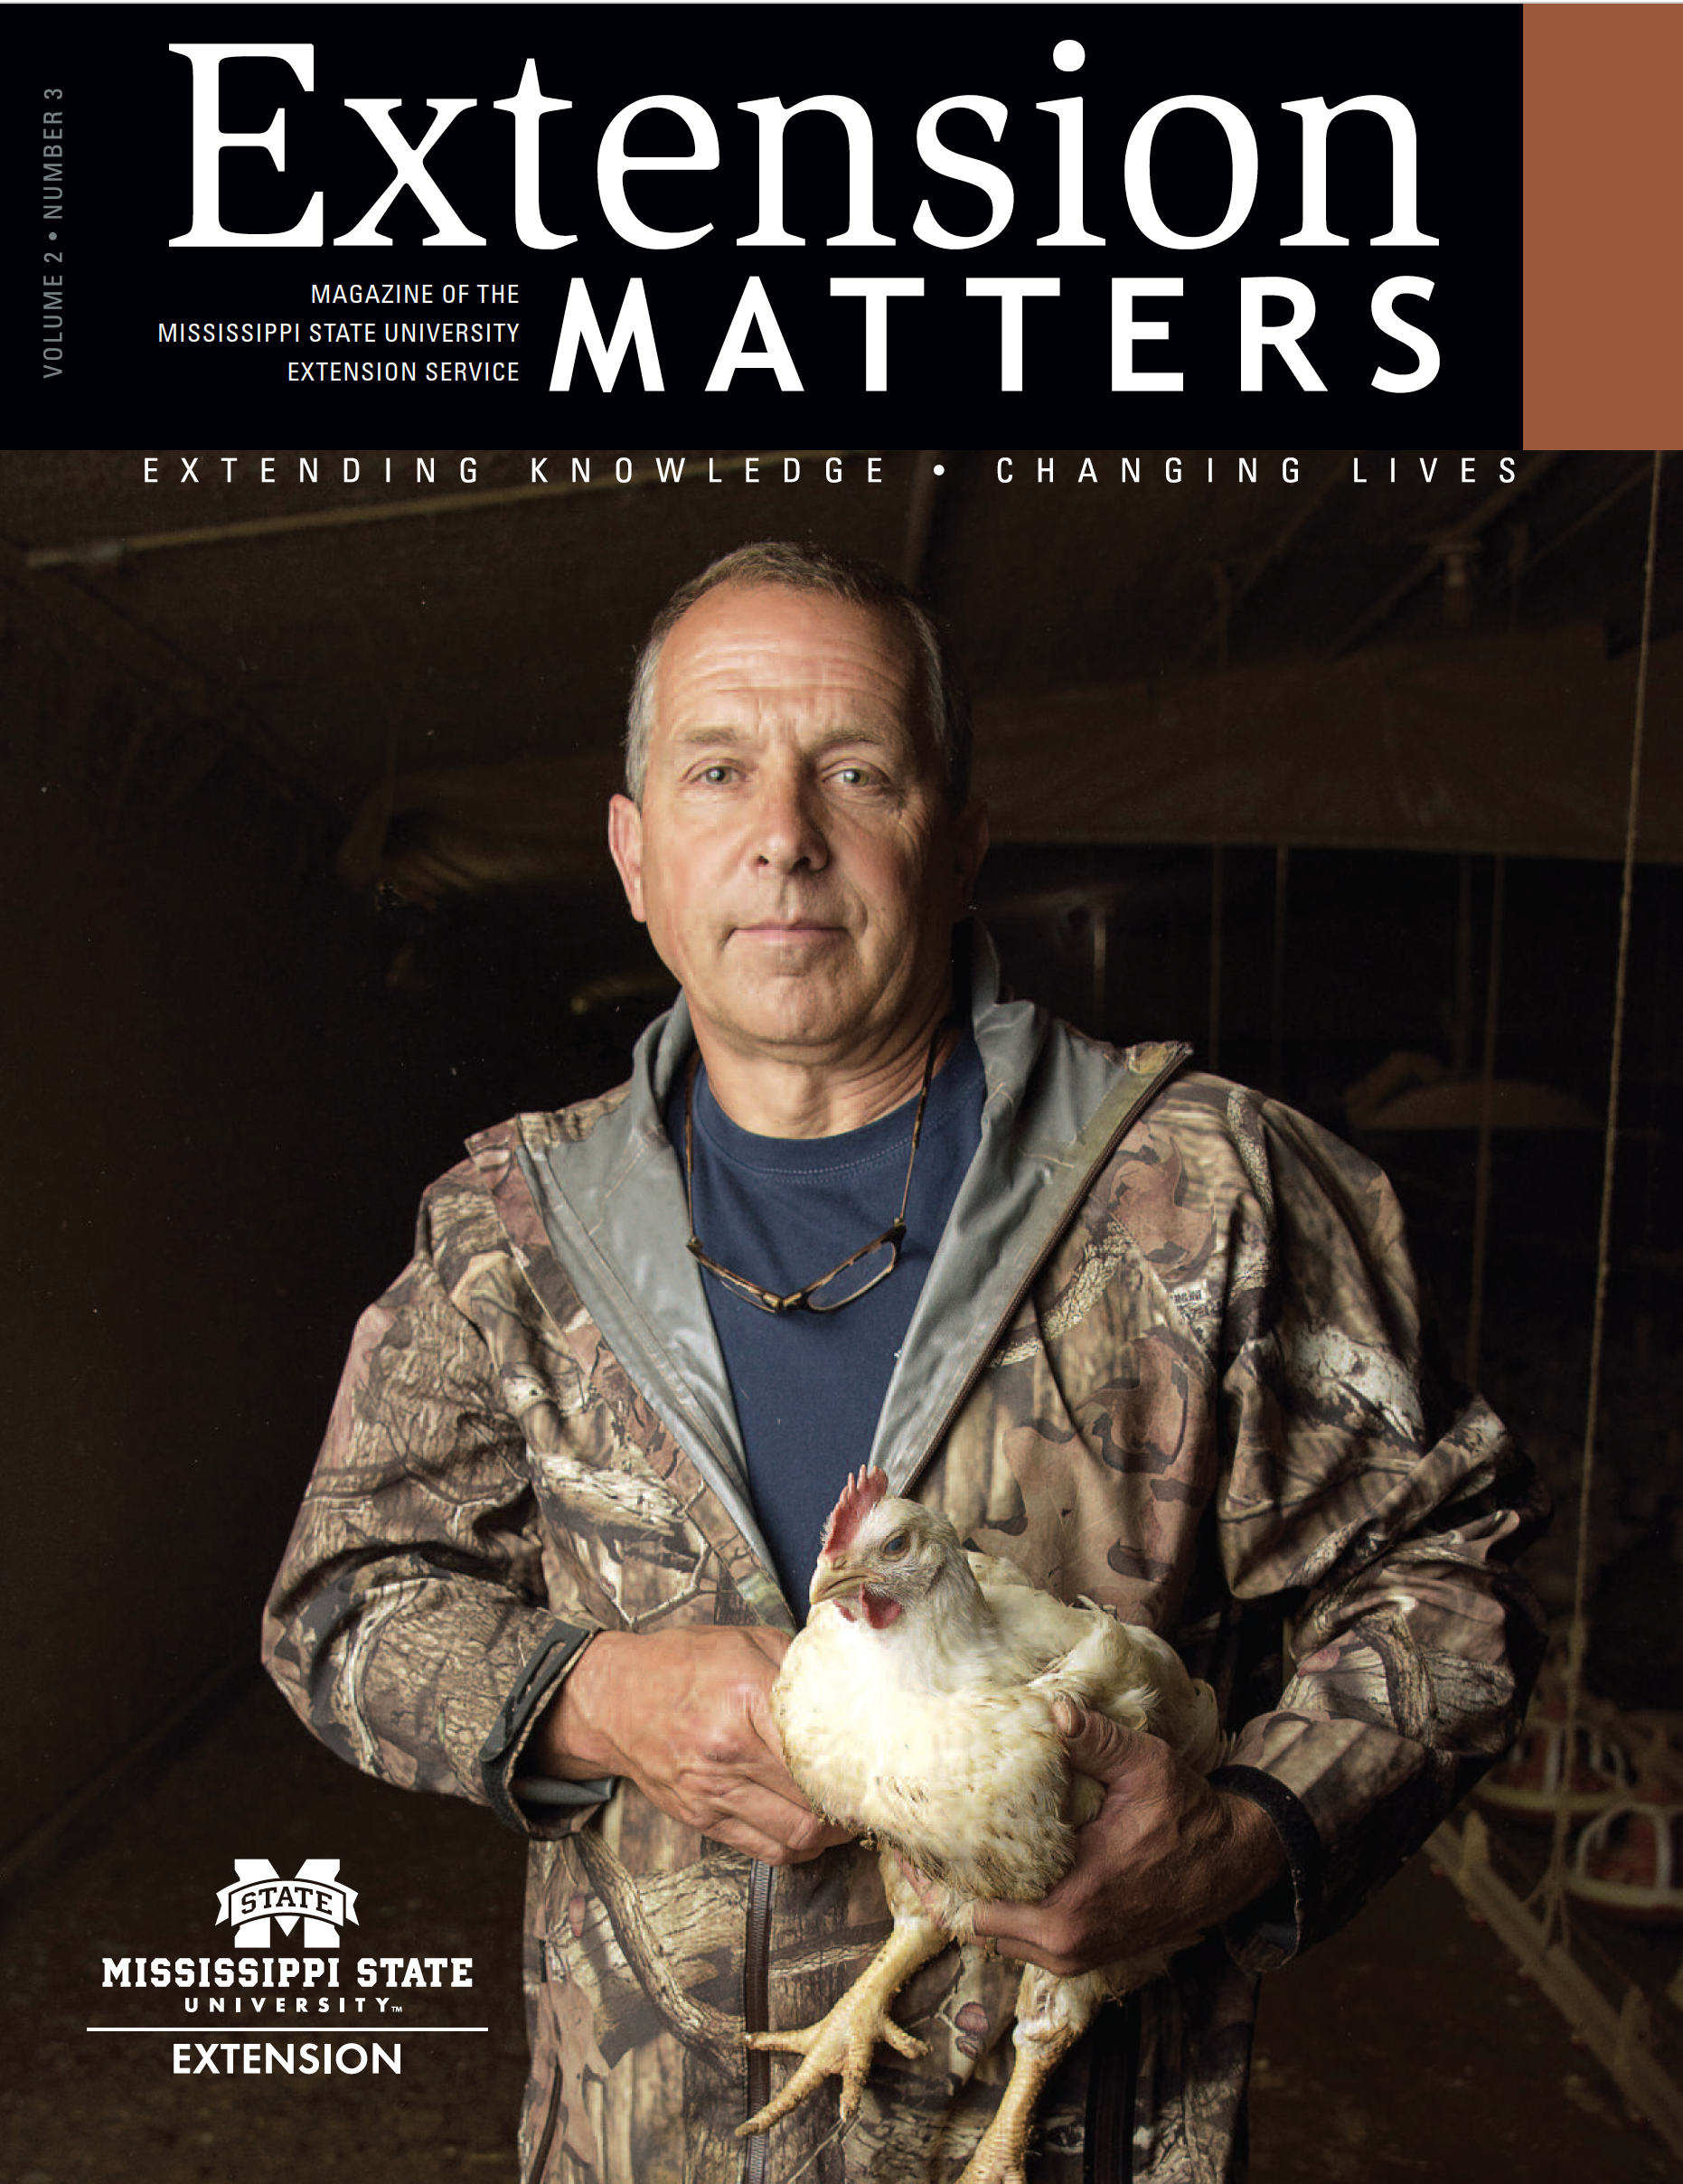 Extension Matters volume 2 number 3.